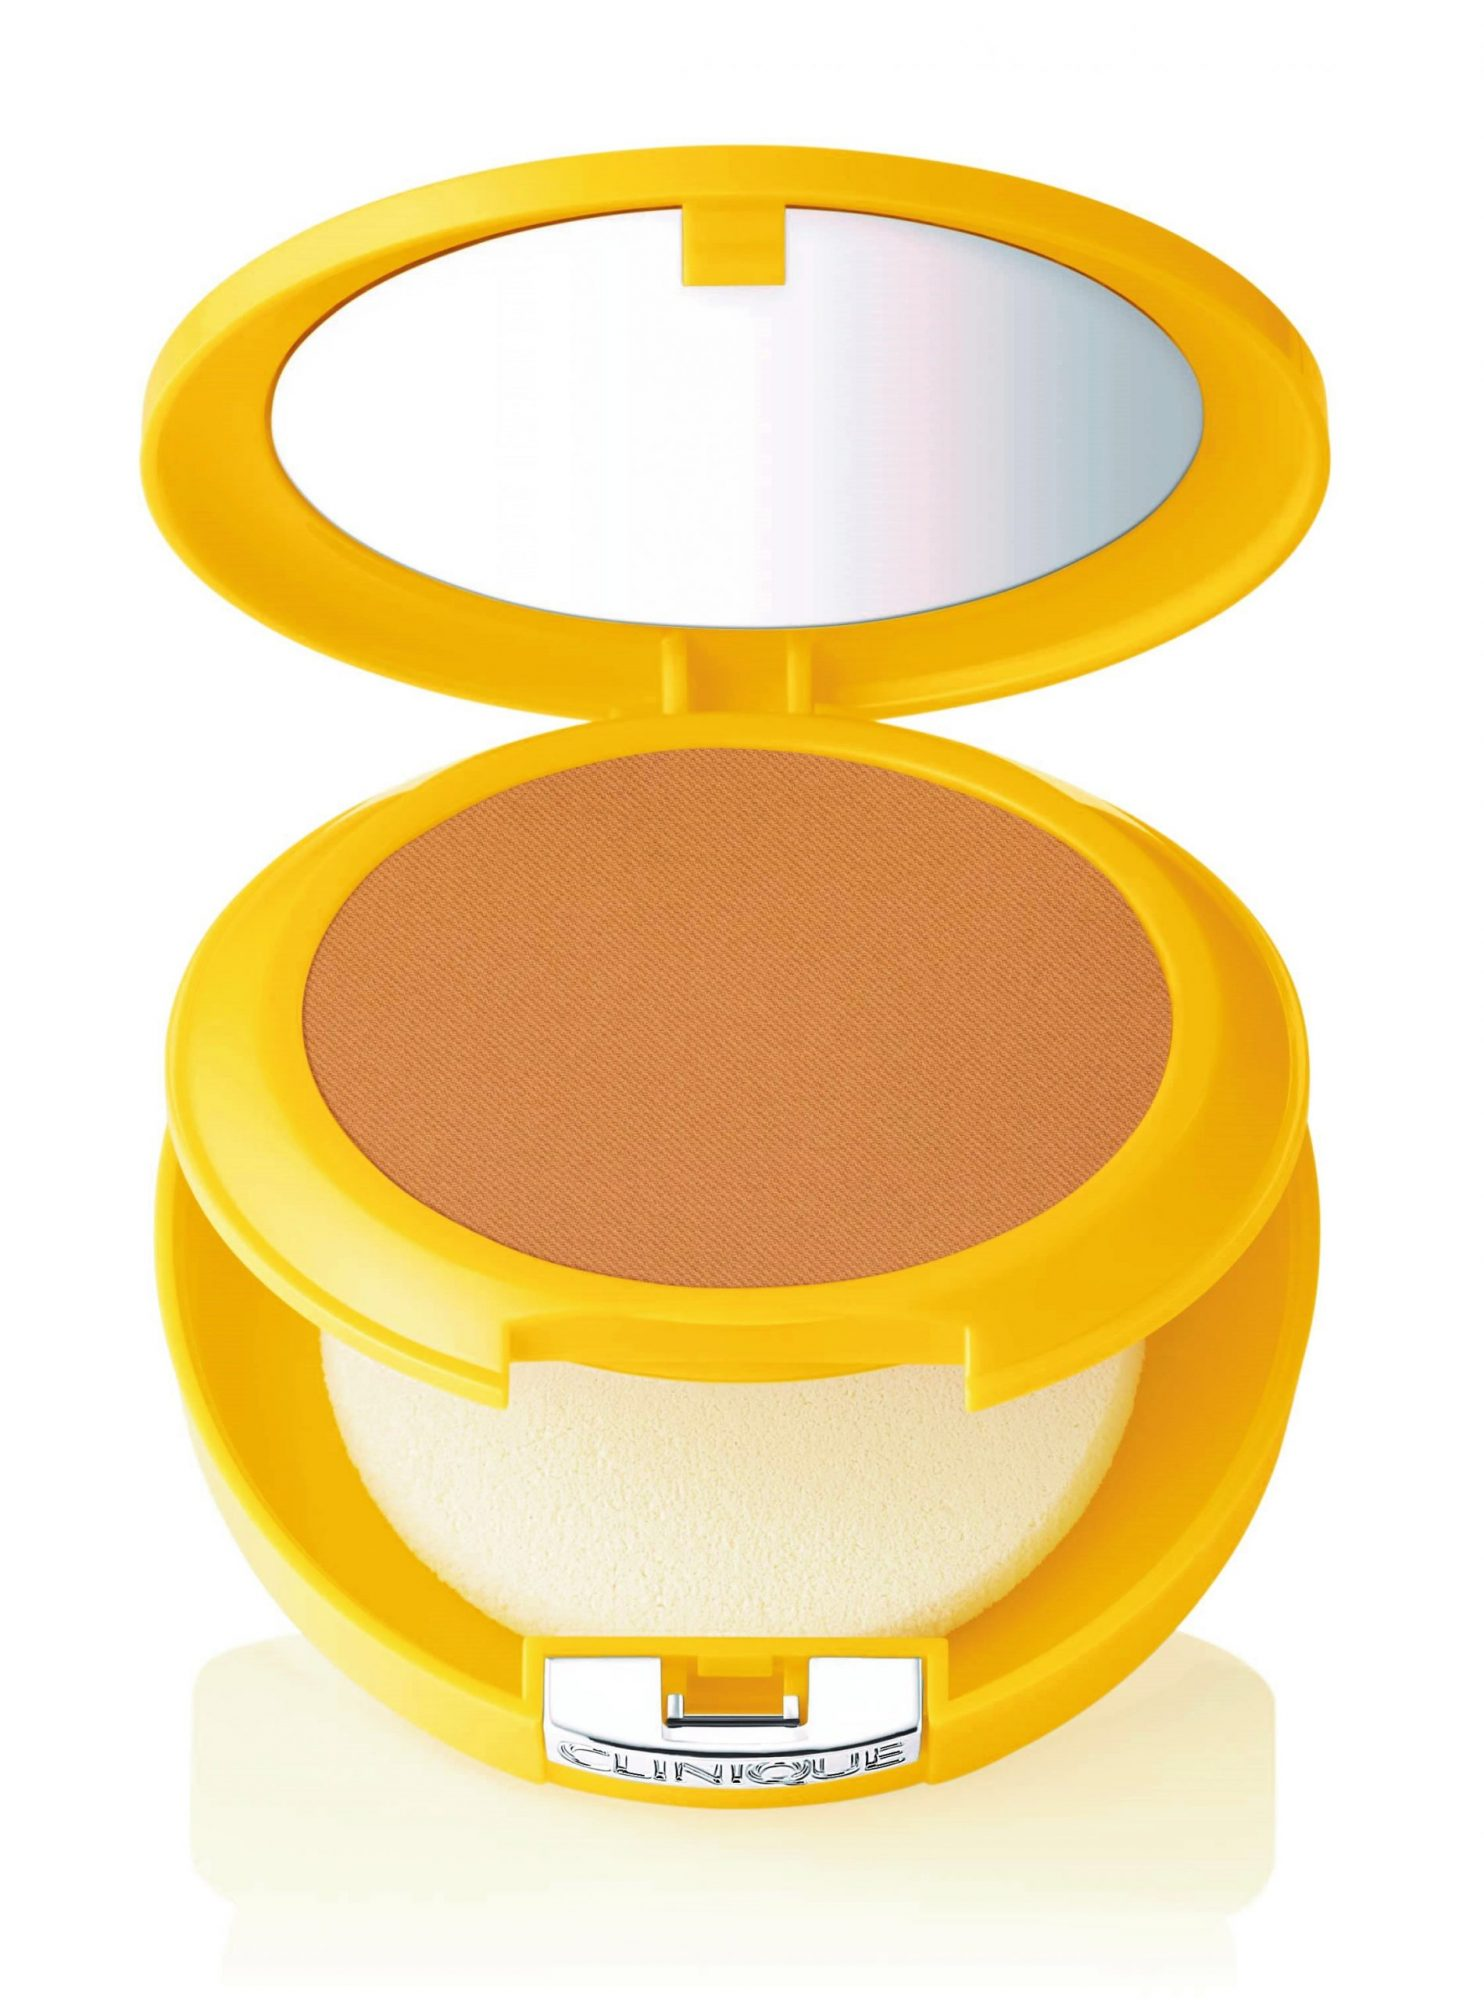 Clinique Sun Protection Powder_Bronzed